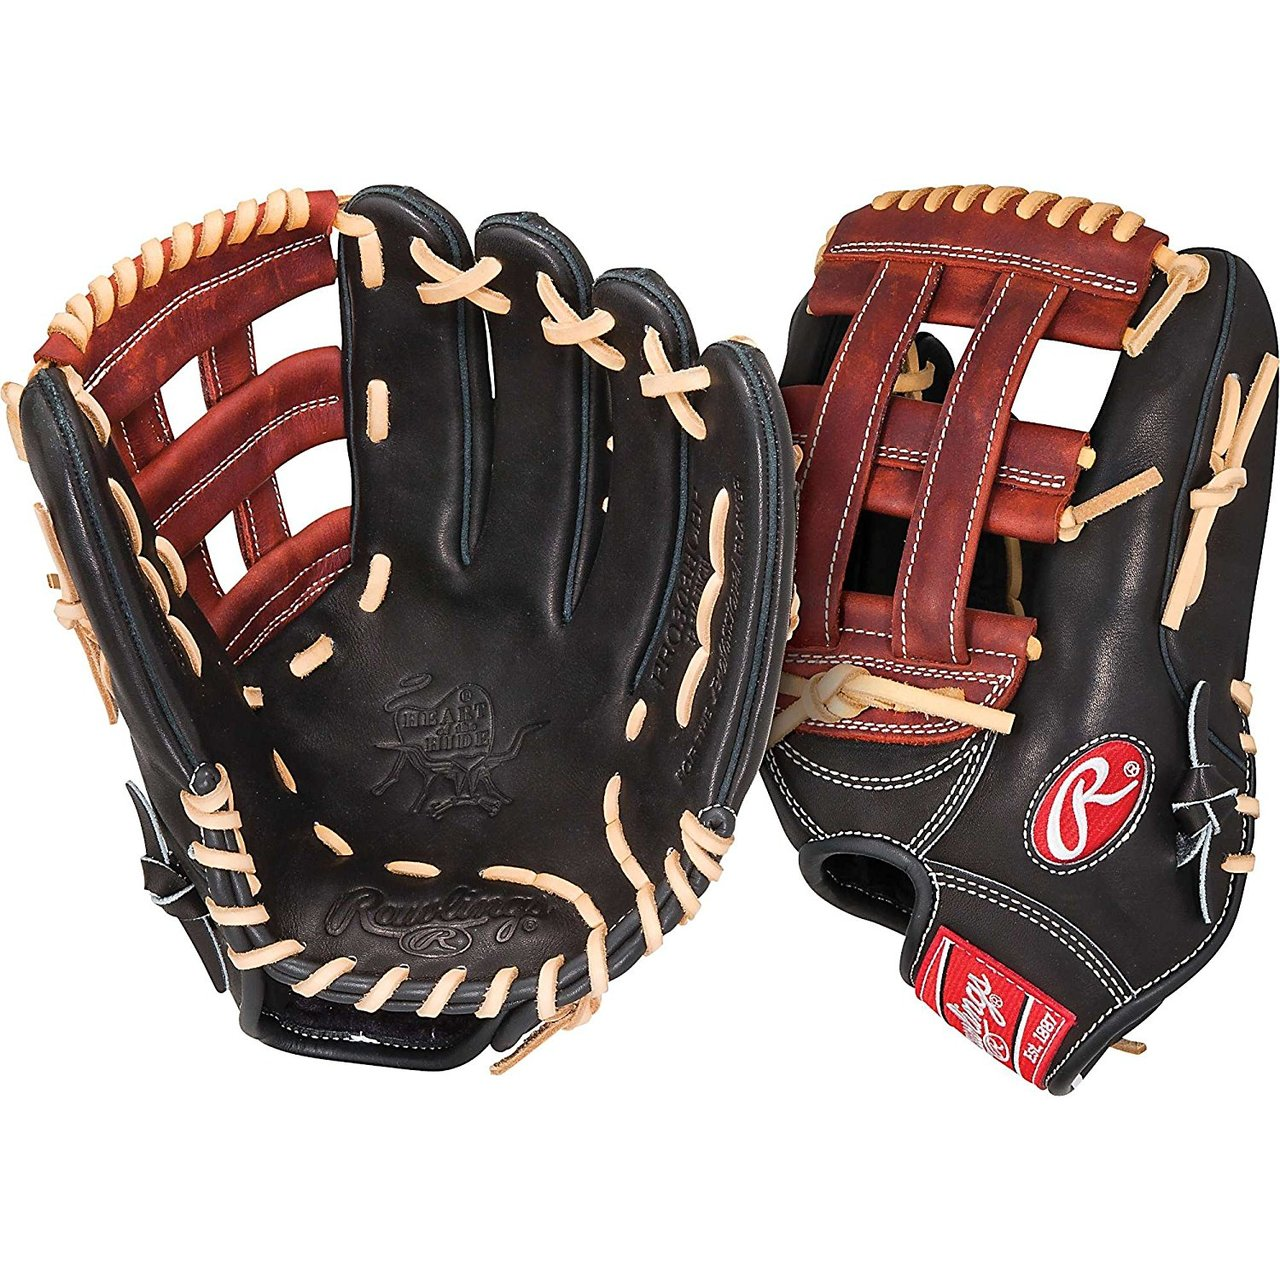 rawlings-heart-of-the-hide-12-75-inch-pro303hcbp-outfielders-baseball-glove-right-handed-throw PRO303HCBP-Right Handed Throw Rawlings 083321186318 The Living Legend. Since 1958 the Rawlings Heart of the Hide